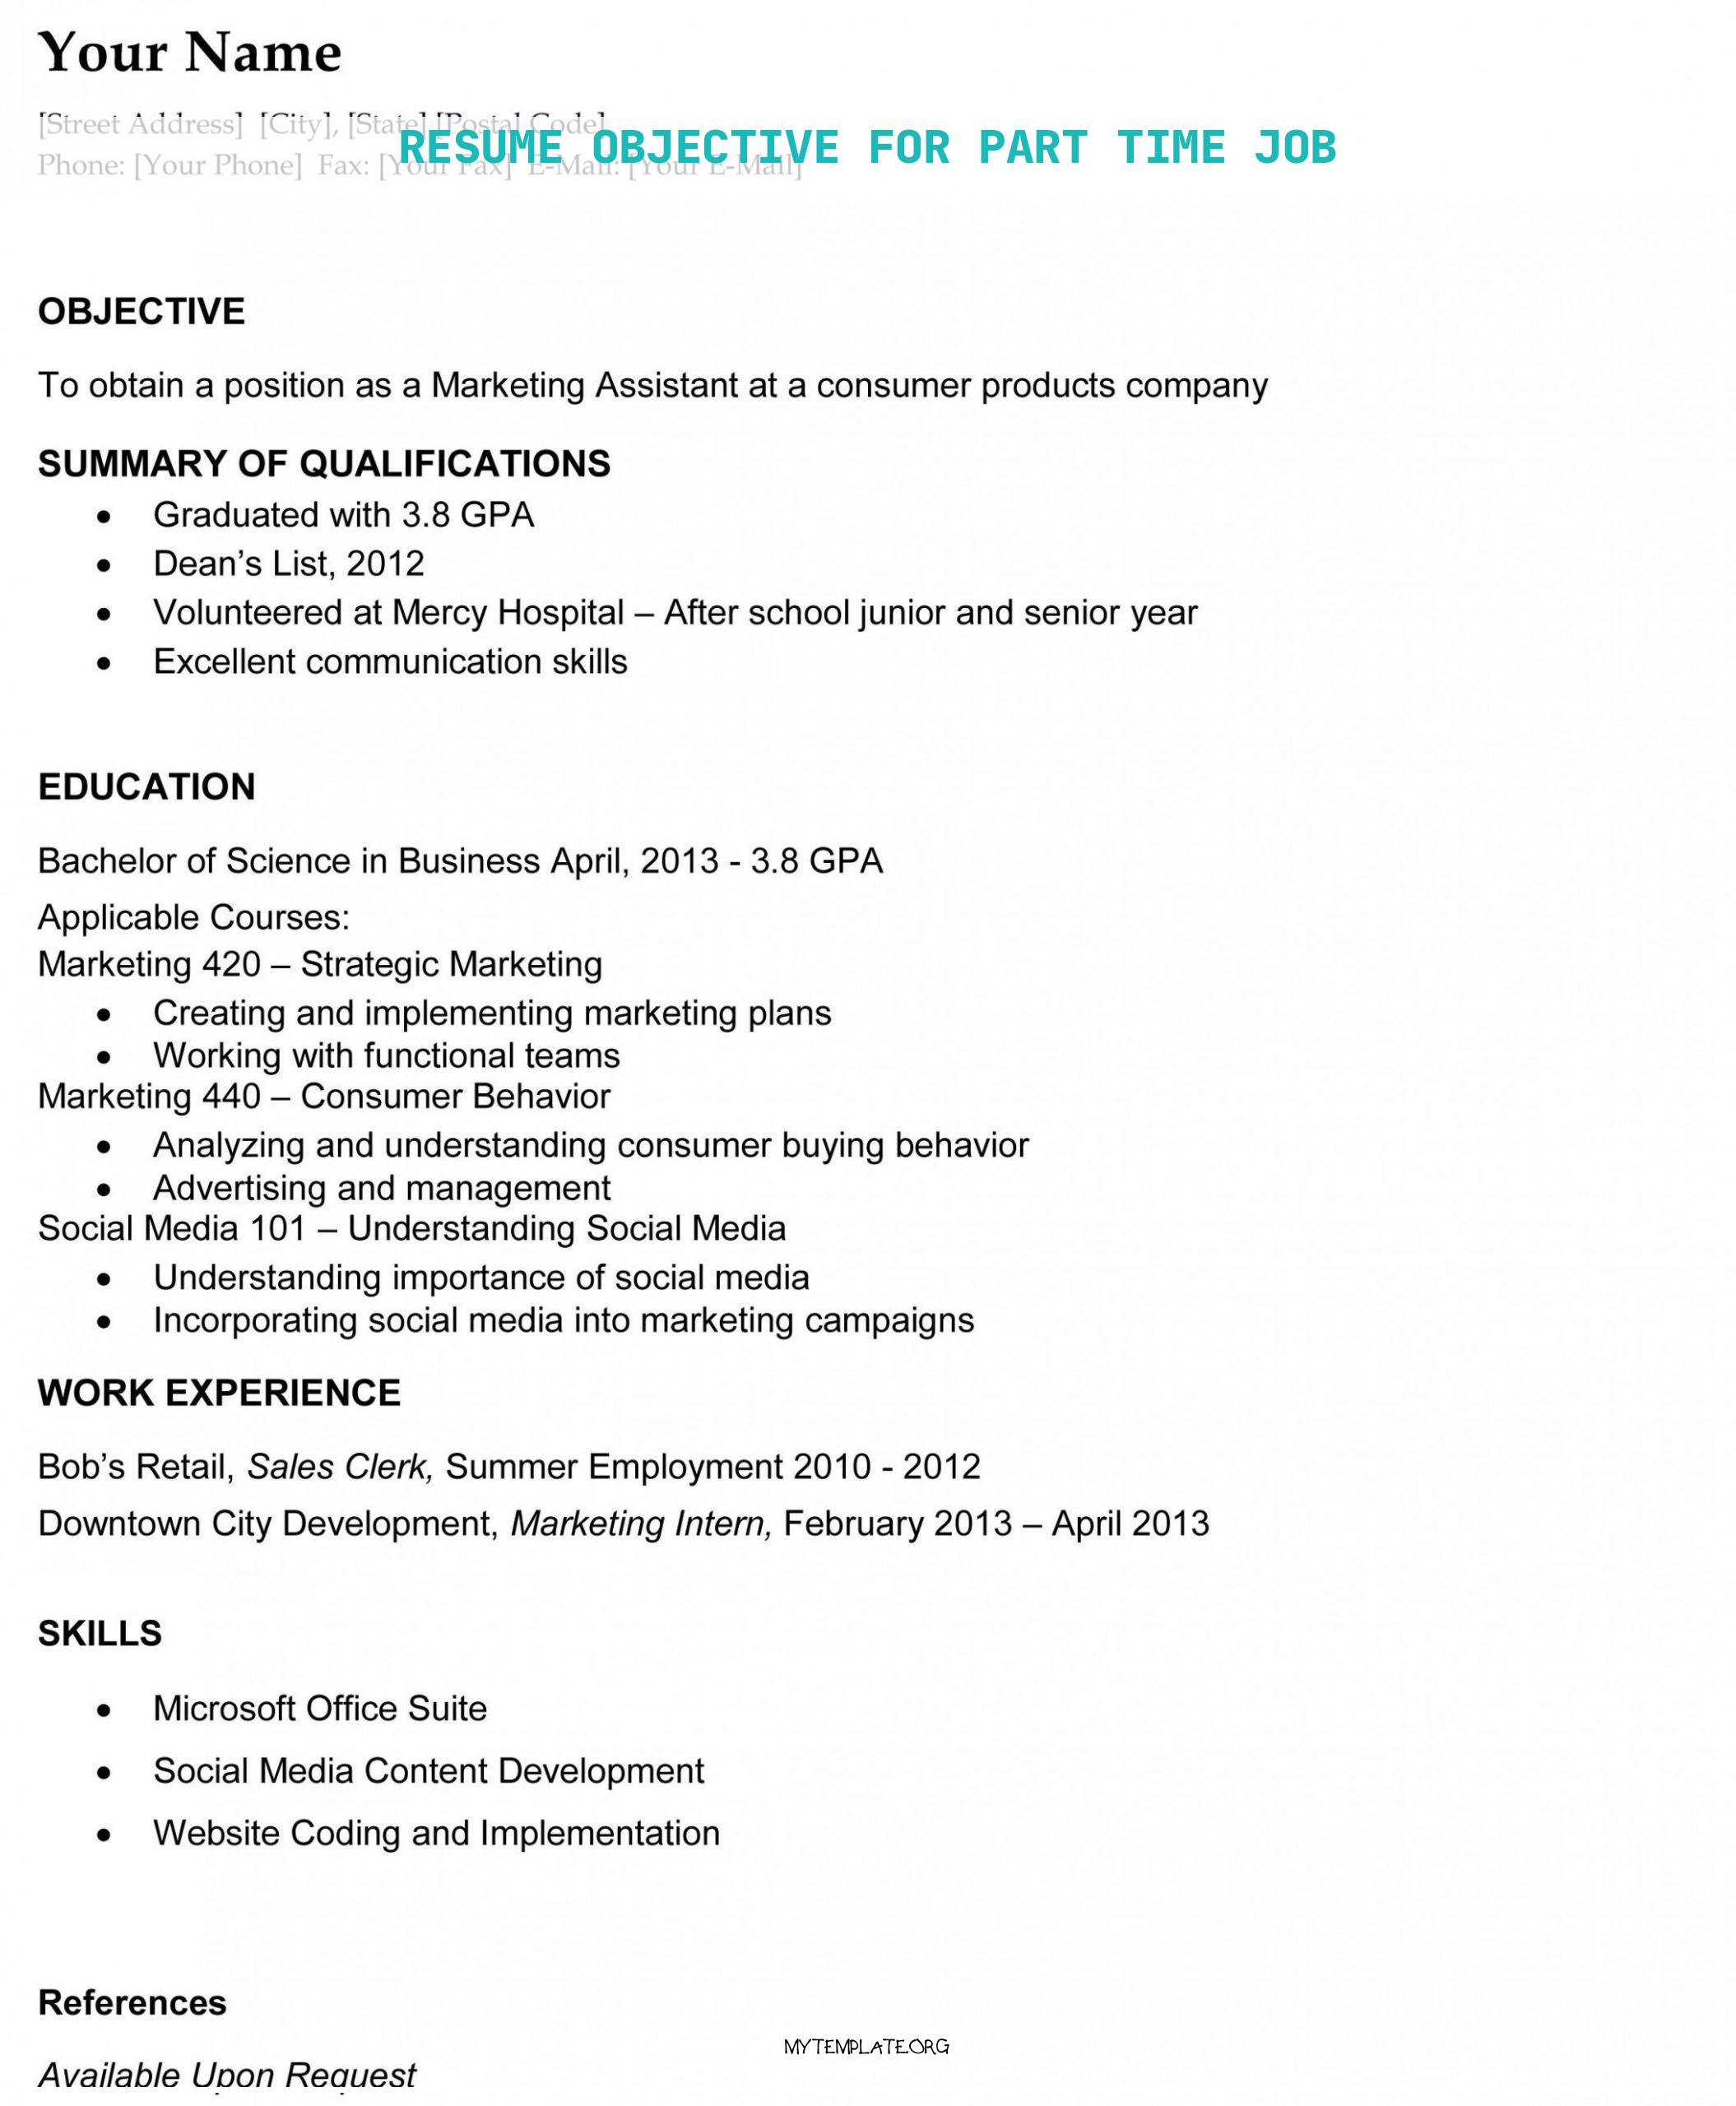 10 Resume Objective For Part Time Job Free Templates